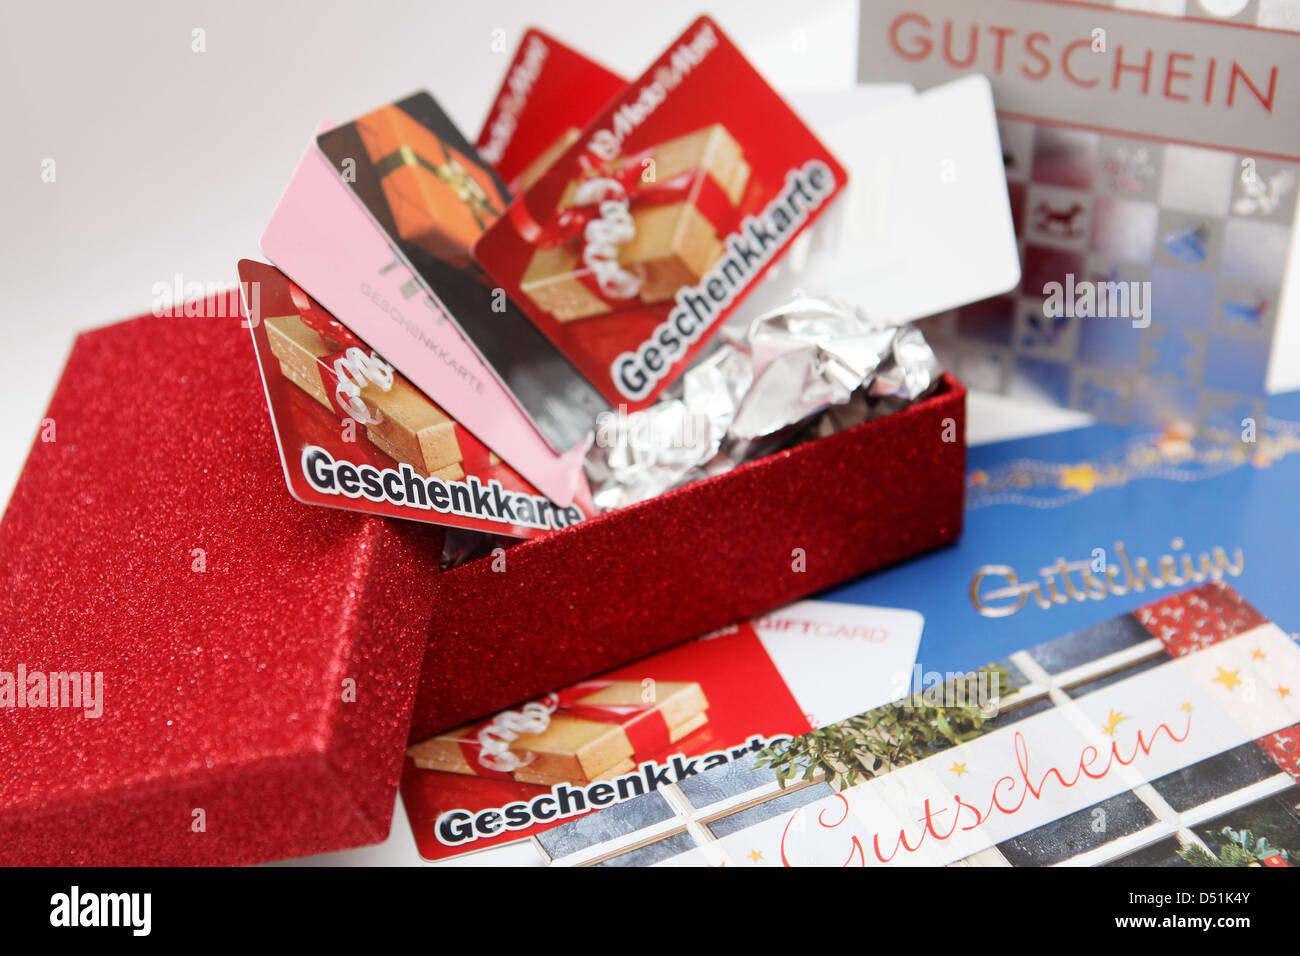 gift certificates and gift coupons lie on a table in hamburg stock gift certificates and gift coupons lie on a table in hamburg 20